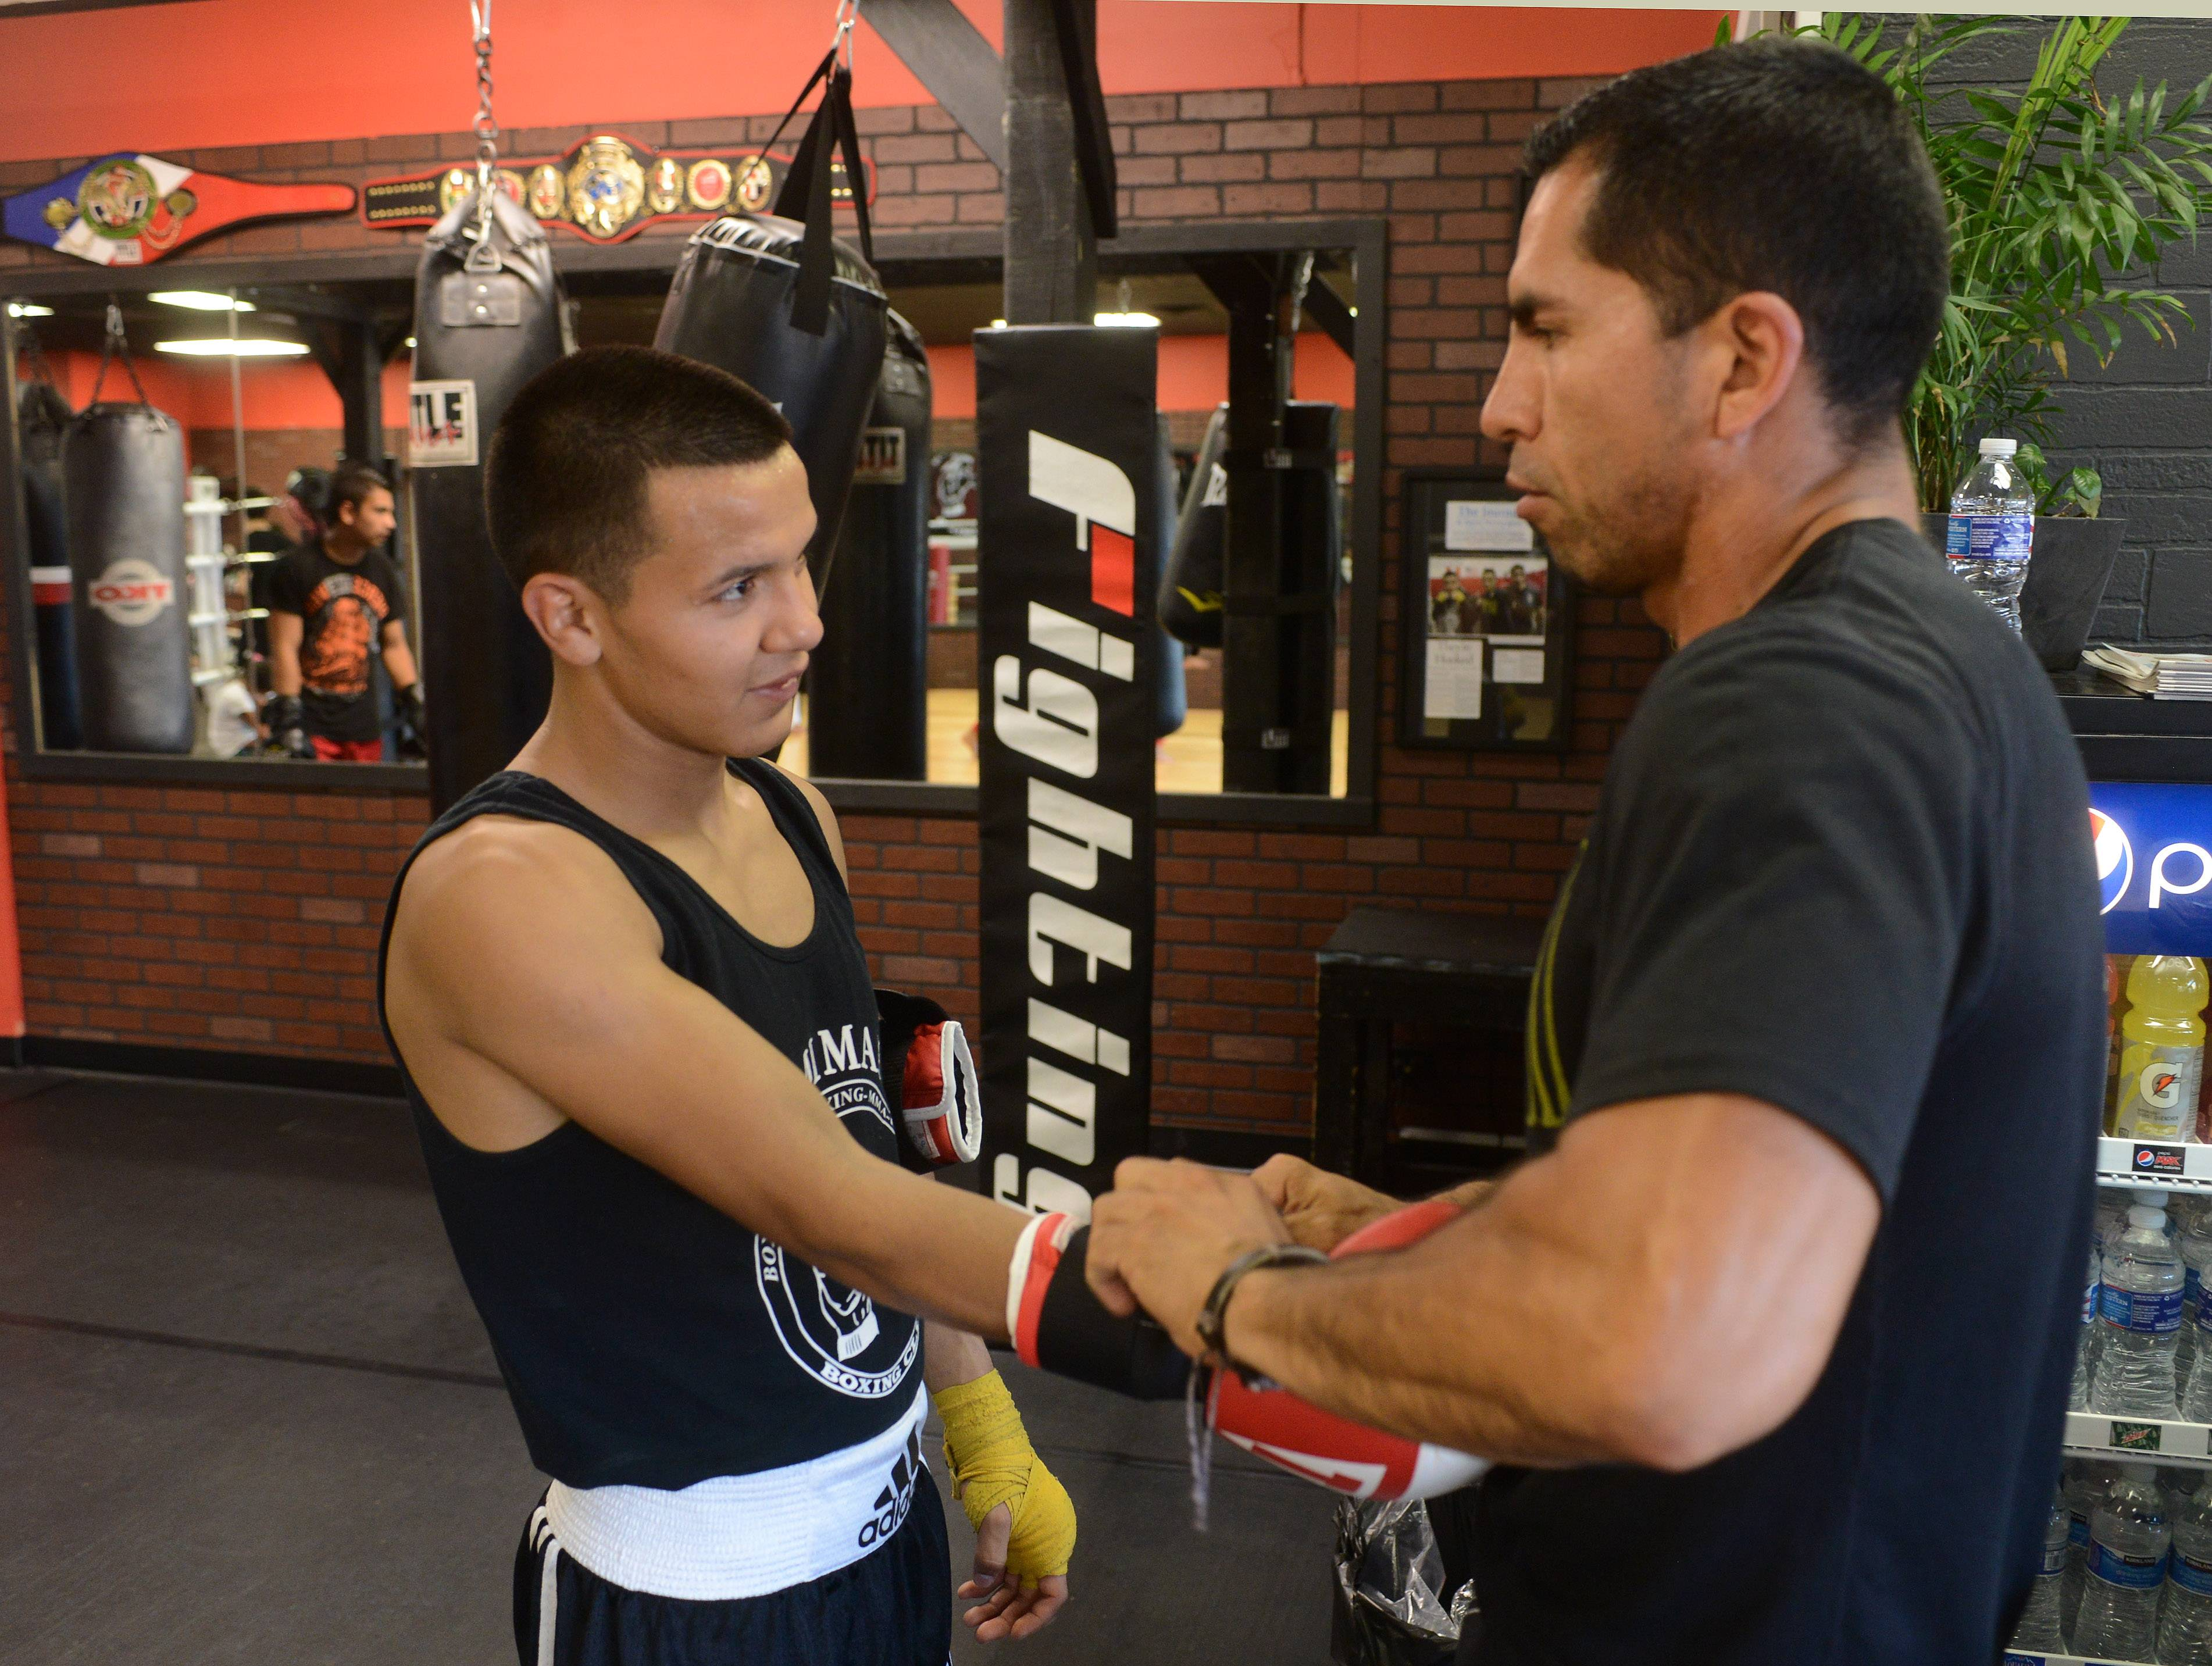 Getting involved in wrestling and later boxing helped him stay out of trouble, said Javier Rivera, 19. Here he's pictured with his coach, Pedro Calla, at Rumi Maki Boxing and Fitness Club in Palatine.